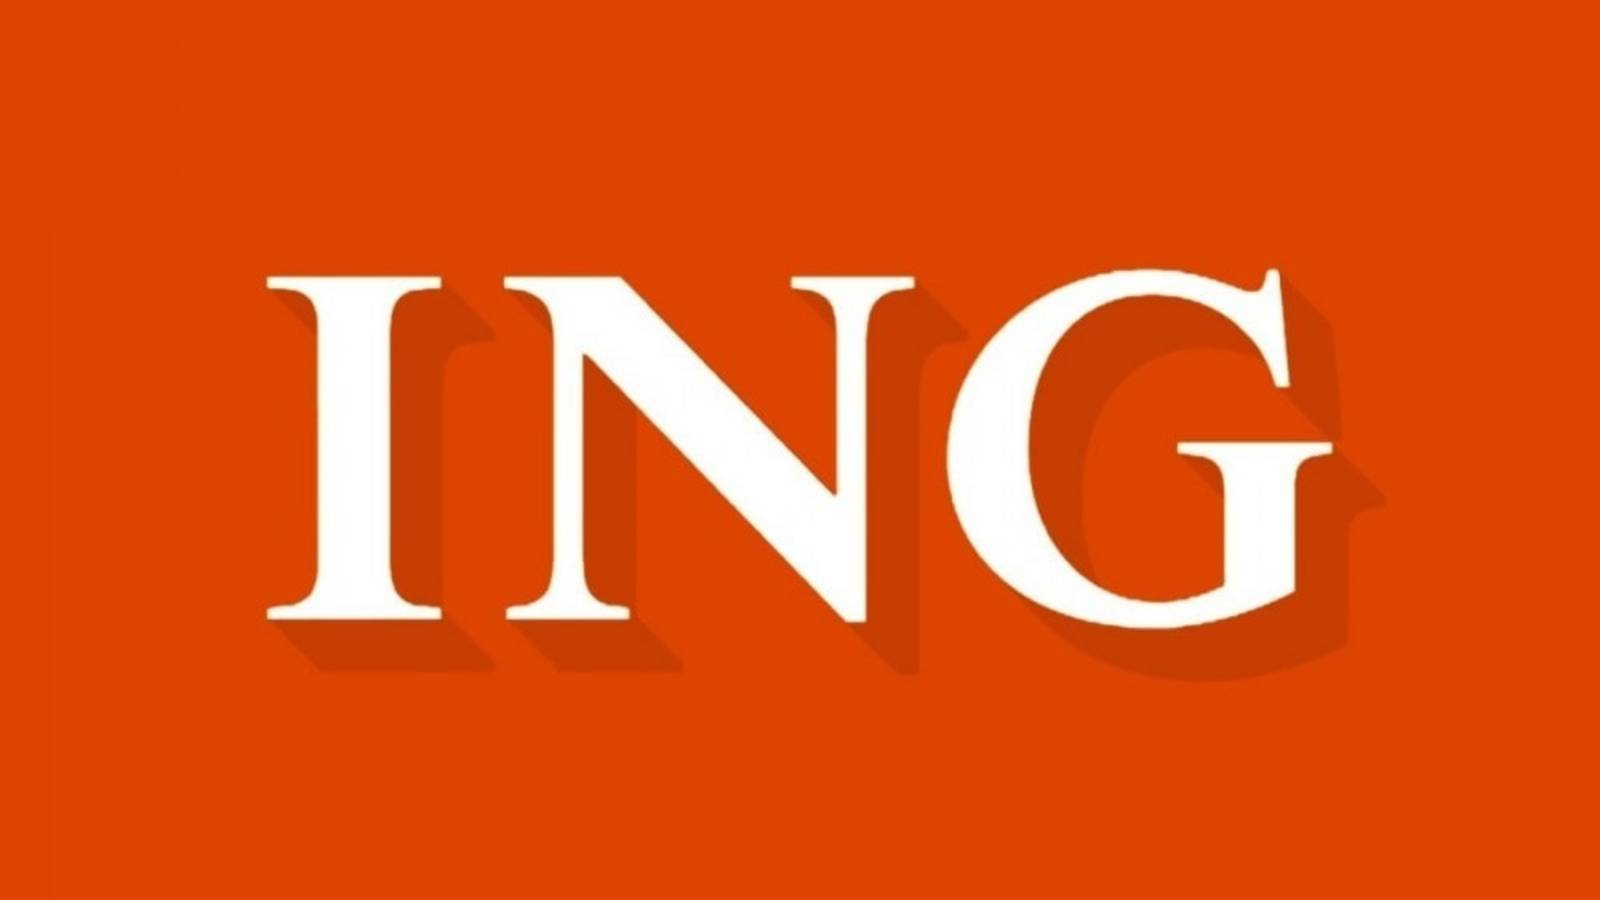 ING Bank complicare